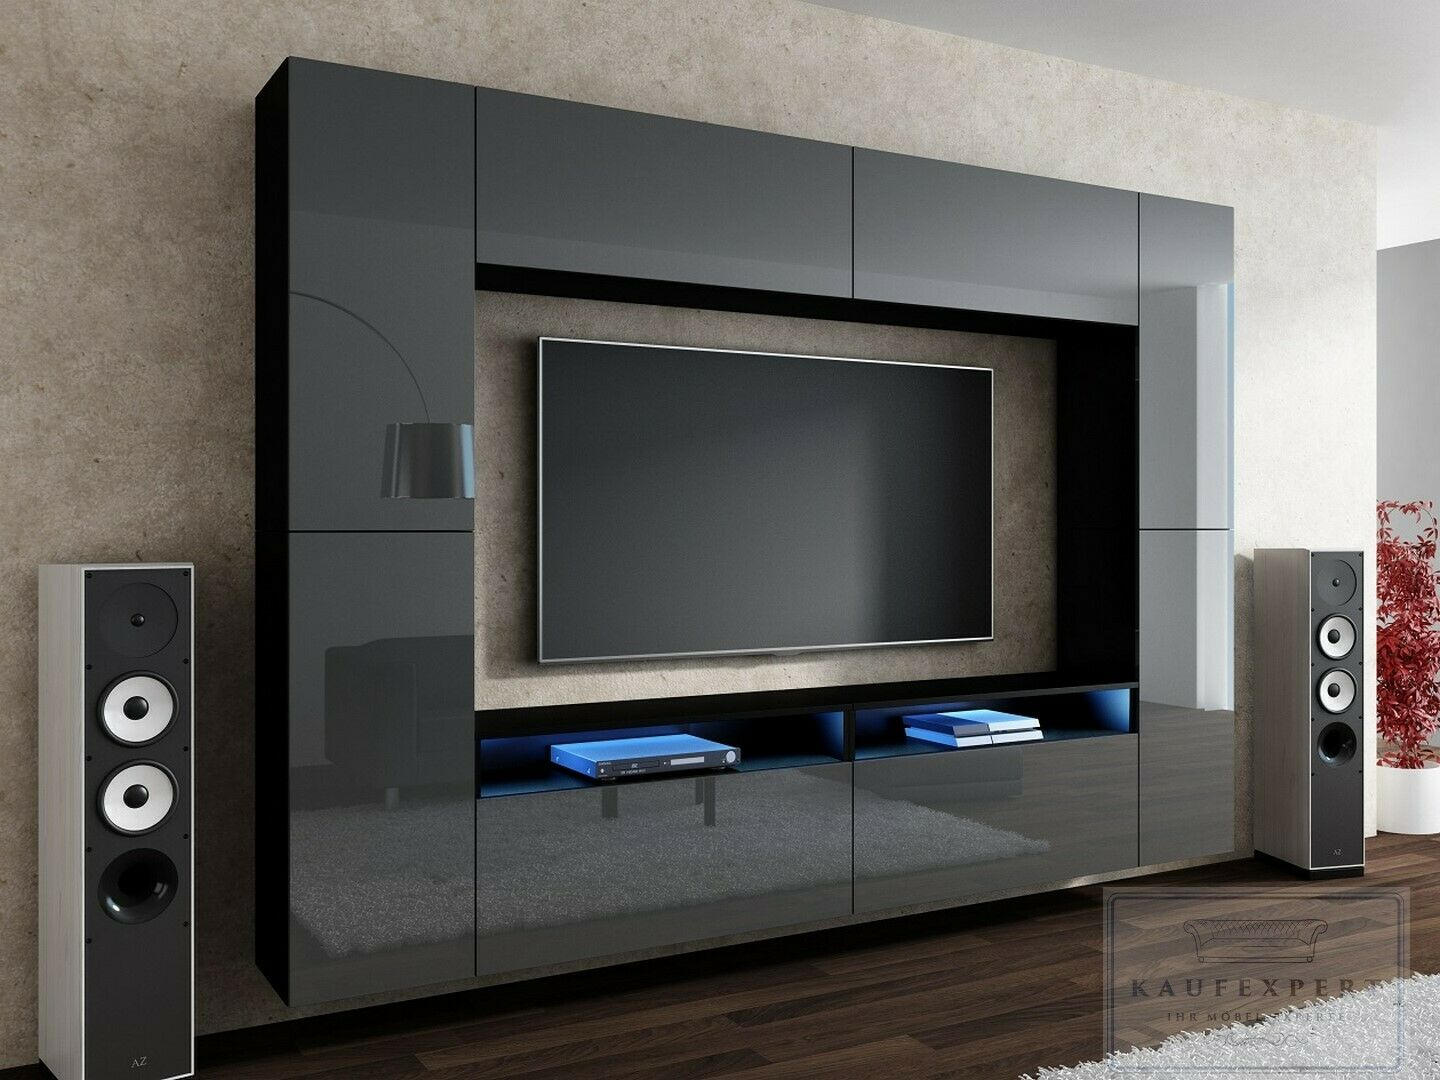 neuheit wohnwand cinema grau hochglanz schwarz mediawand led concept modern eur 659 00. Black Bedroom Furniture Sets. Home Design Ideas